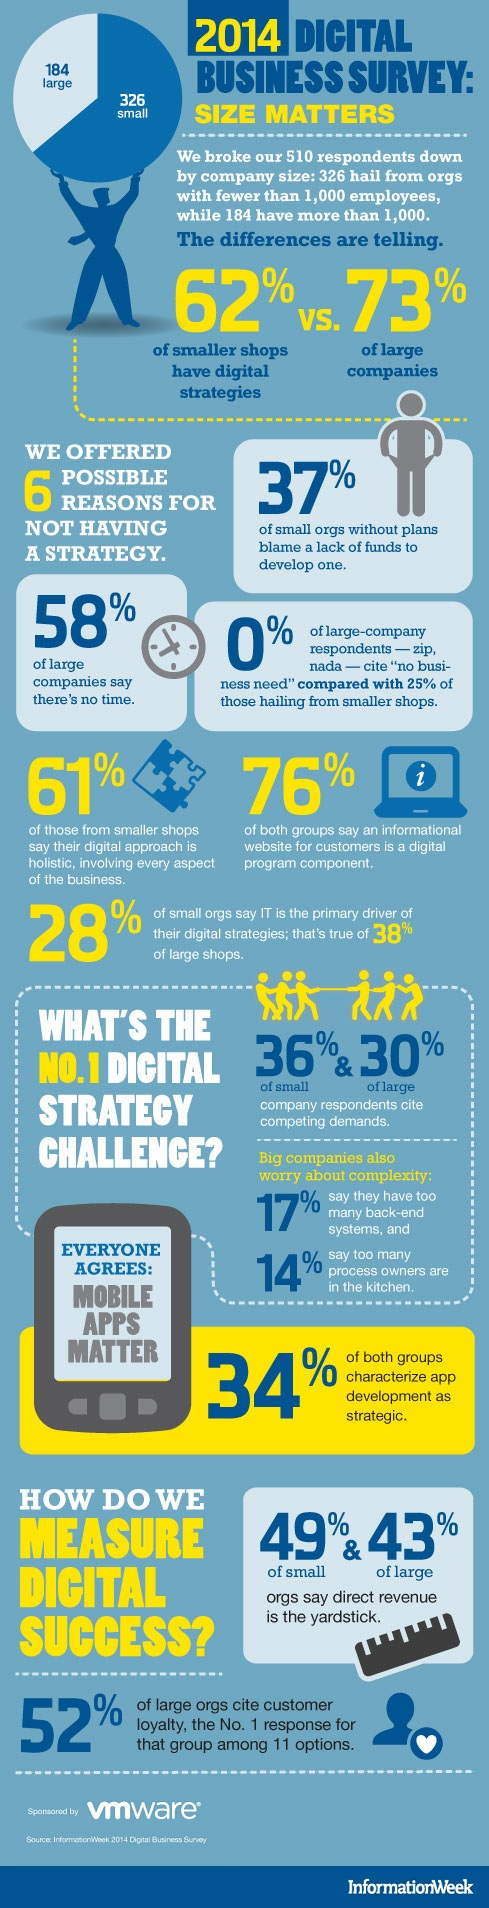 Digital_Business_Survey2014